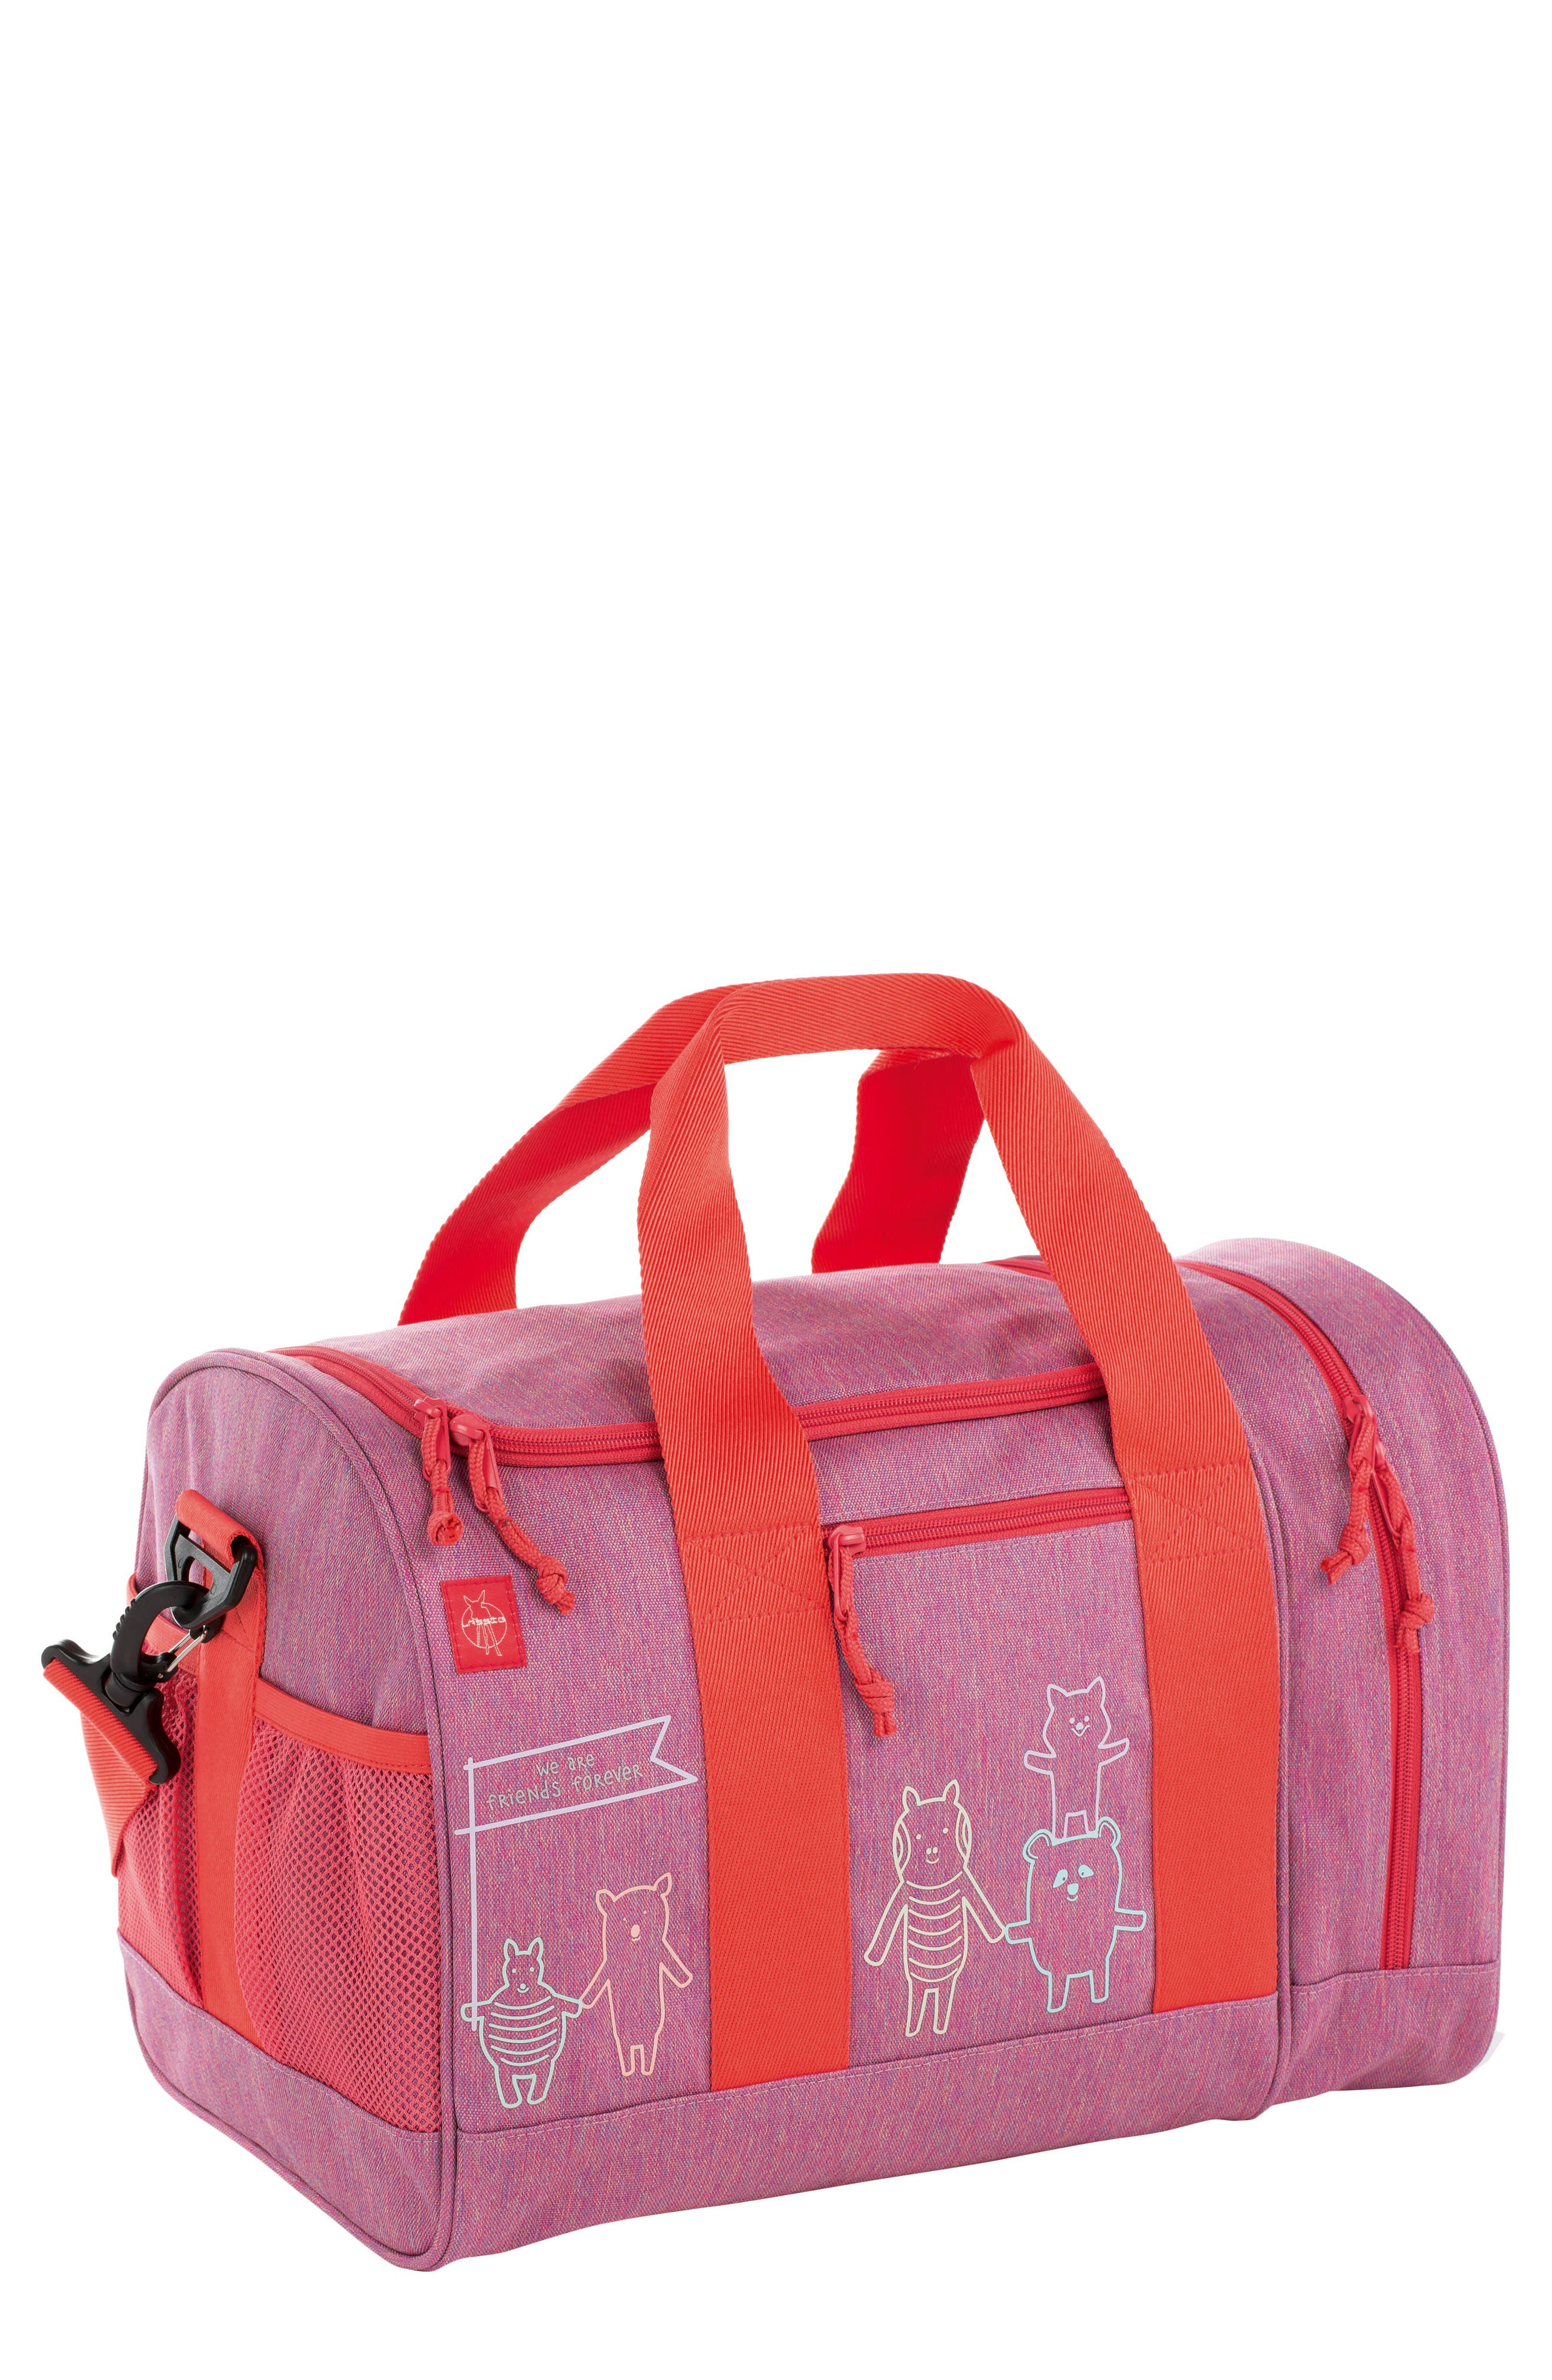 Mini About Friends Duffel Bag,                             Main thumbnail 1, color,                             Melange Pink